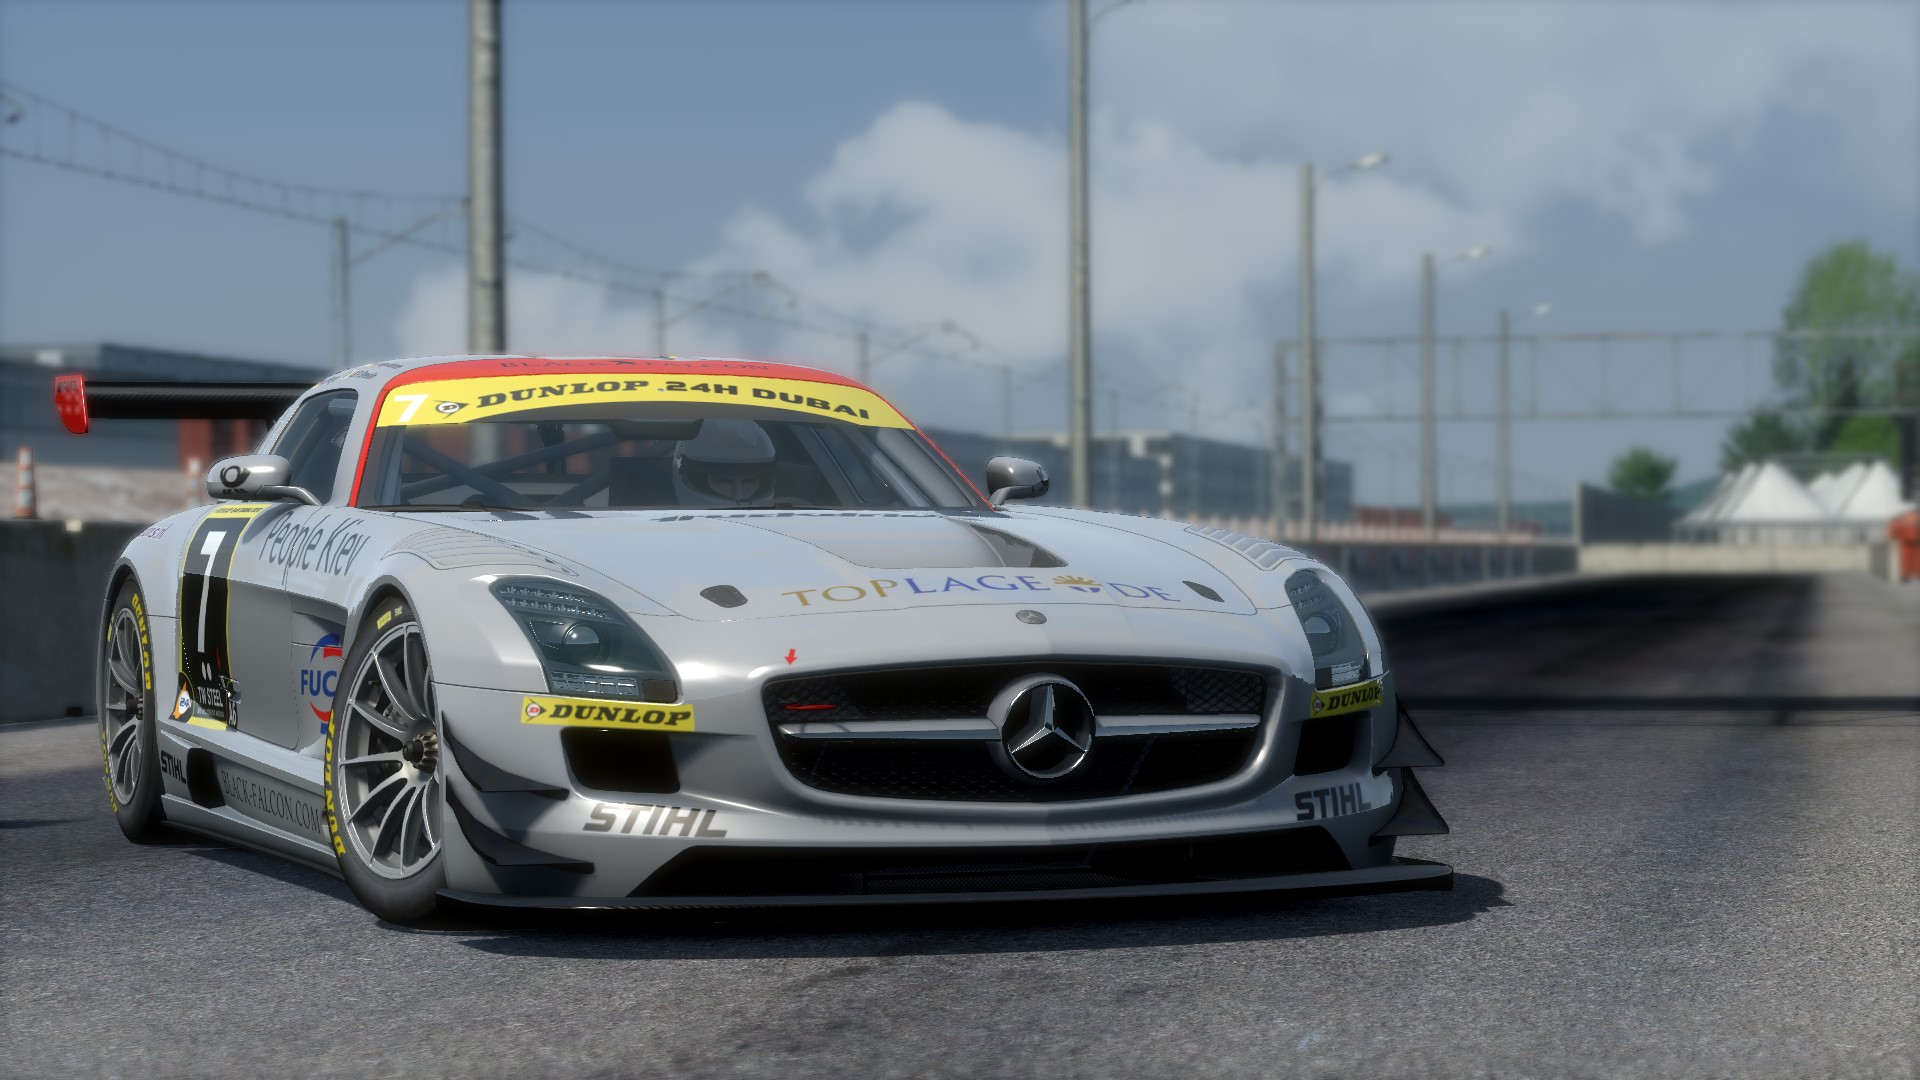 Screenshot_mercedes_sls_gt3_drag1000_24-2-2015-20-15-14.jpg